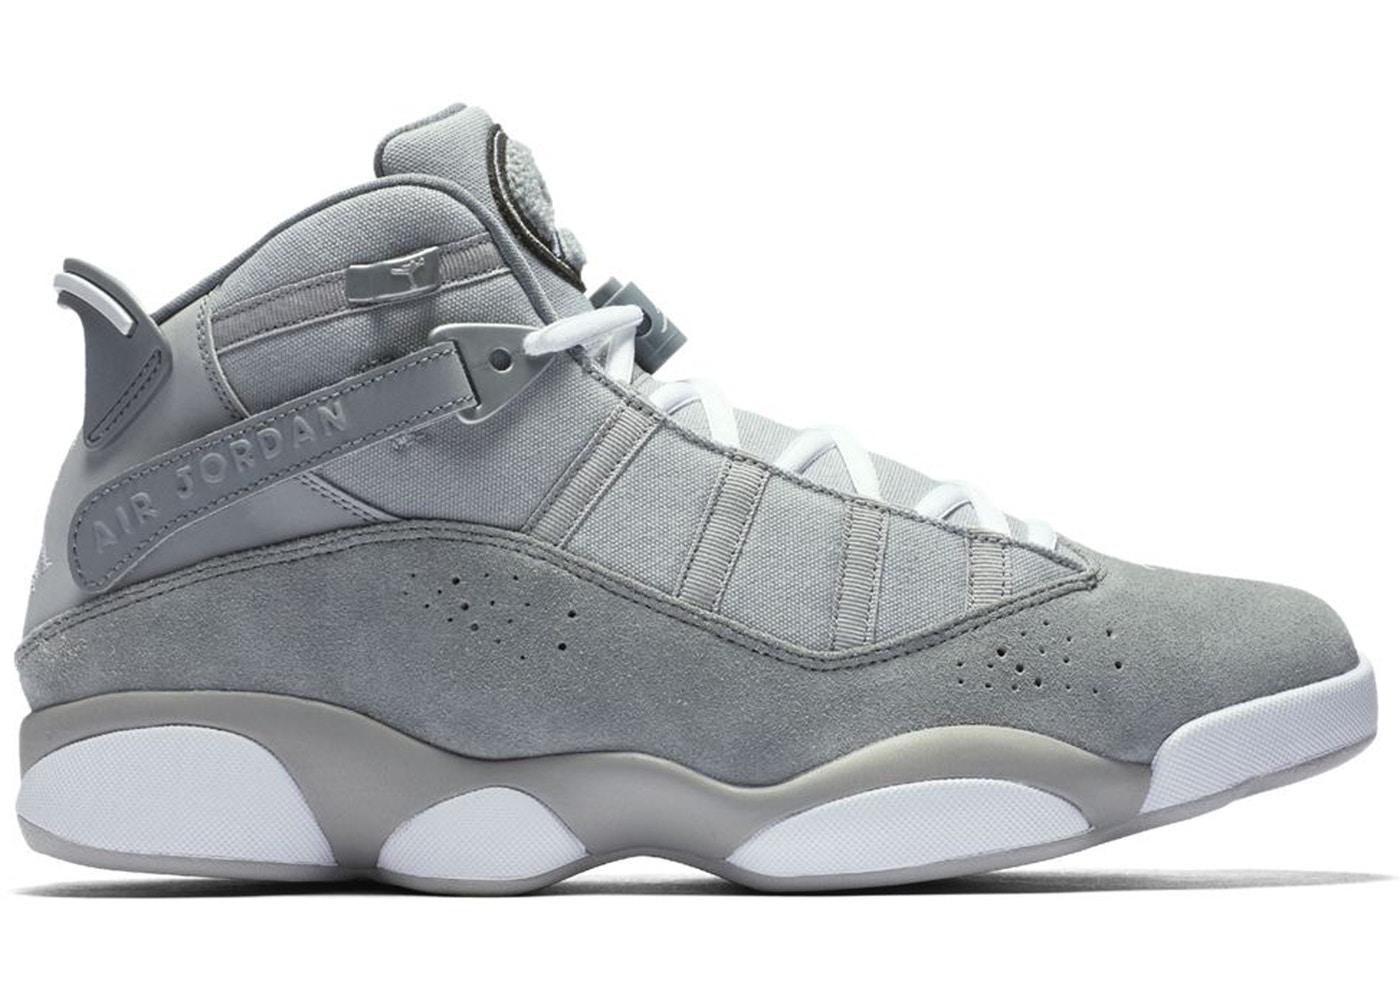 huge discount c466c 6362a Jordan 6 Rings Cool Grey